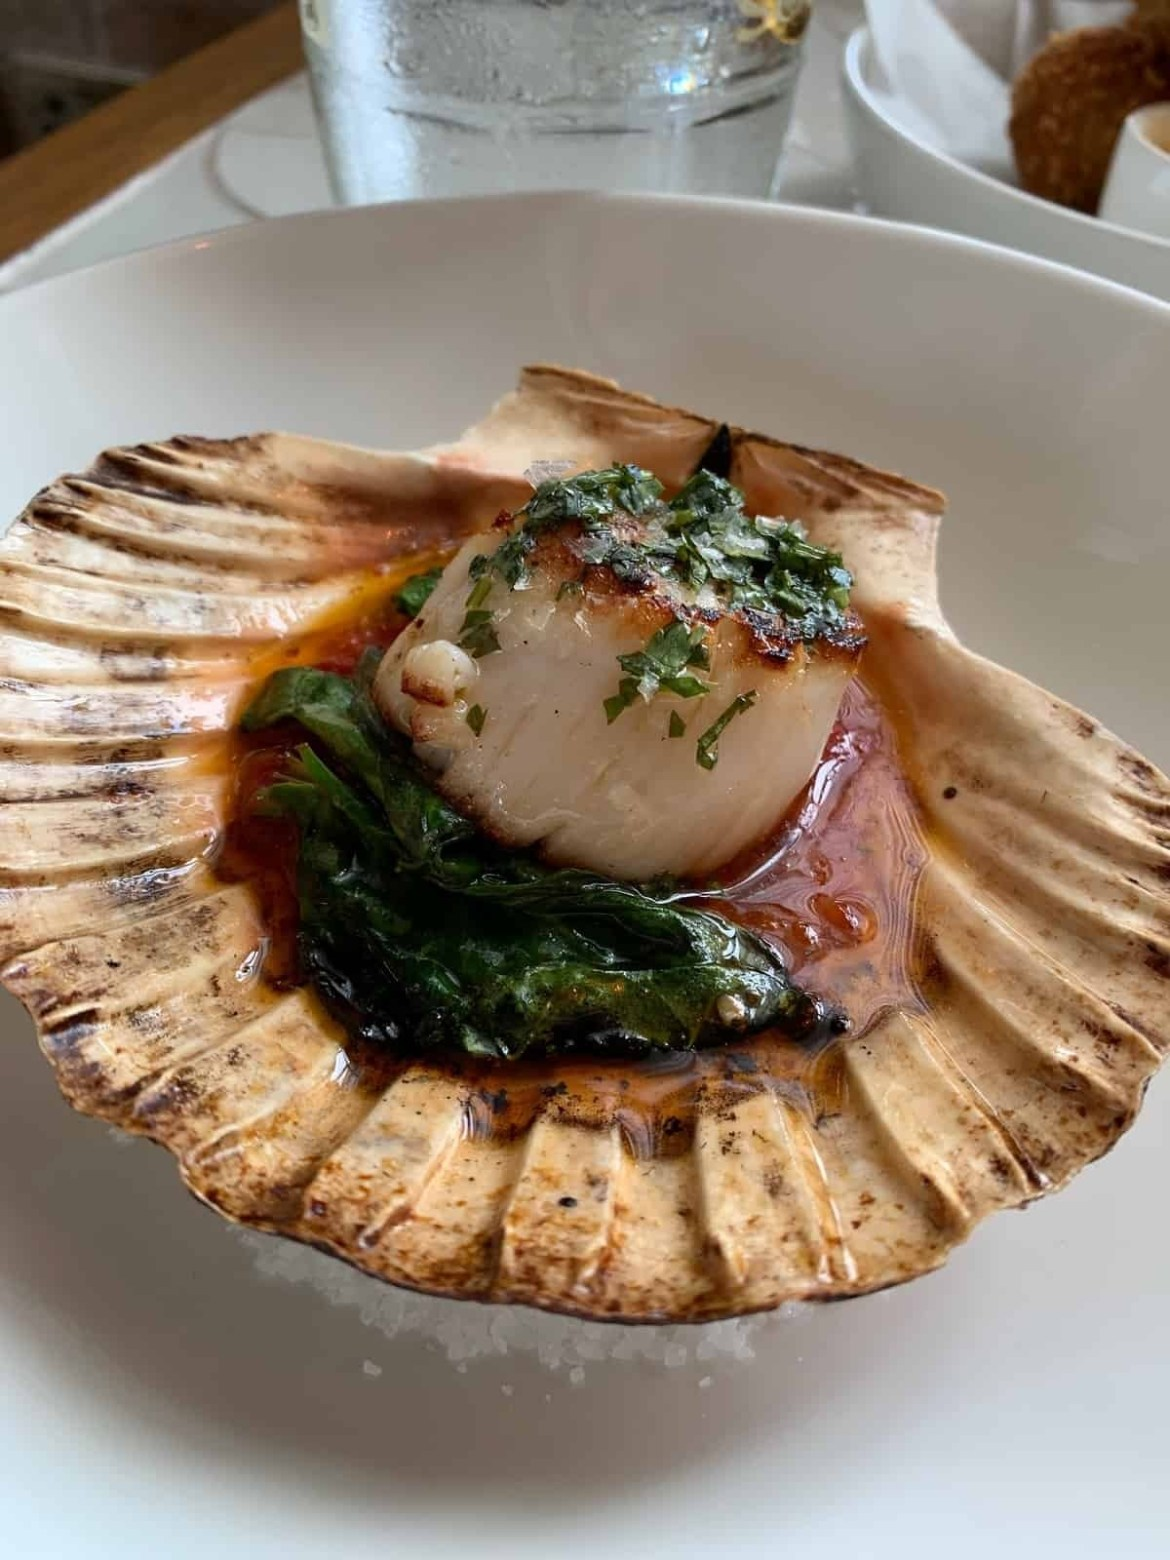 Hand-dived scallop from Seabird